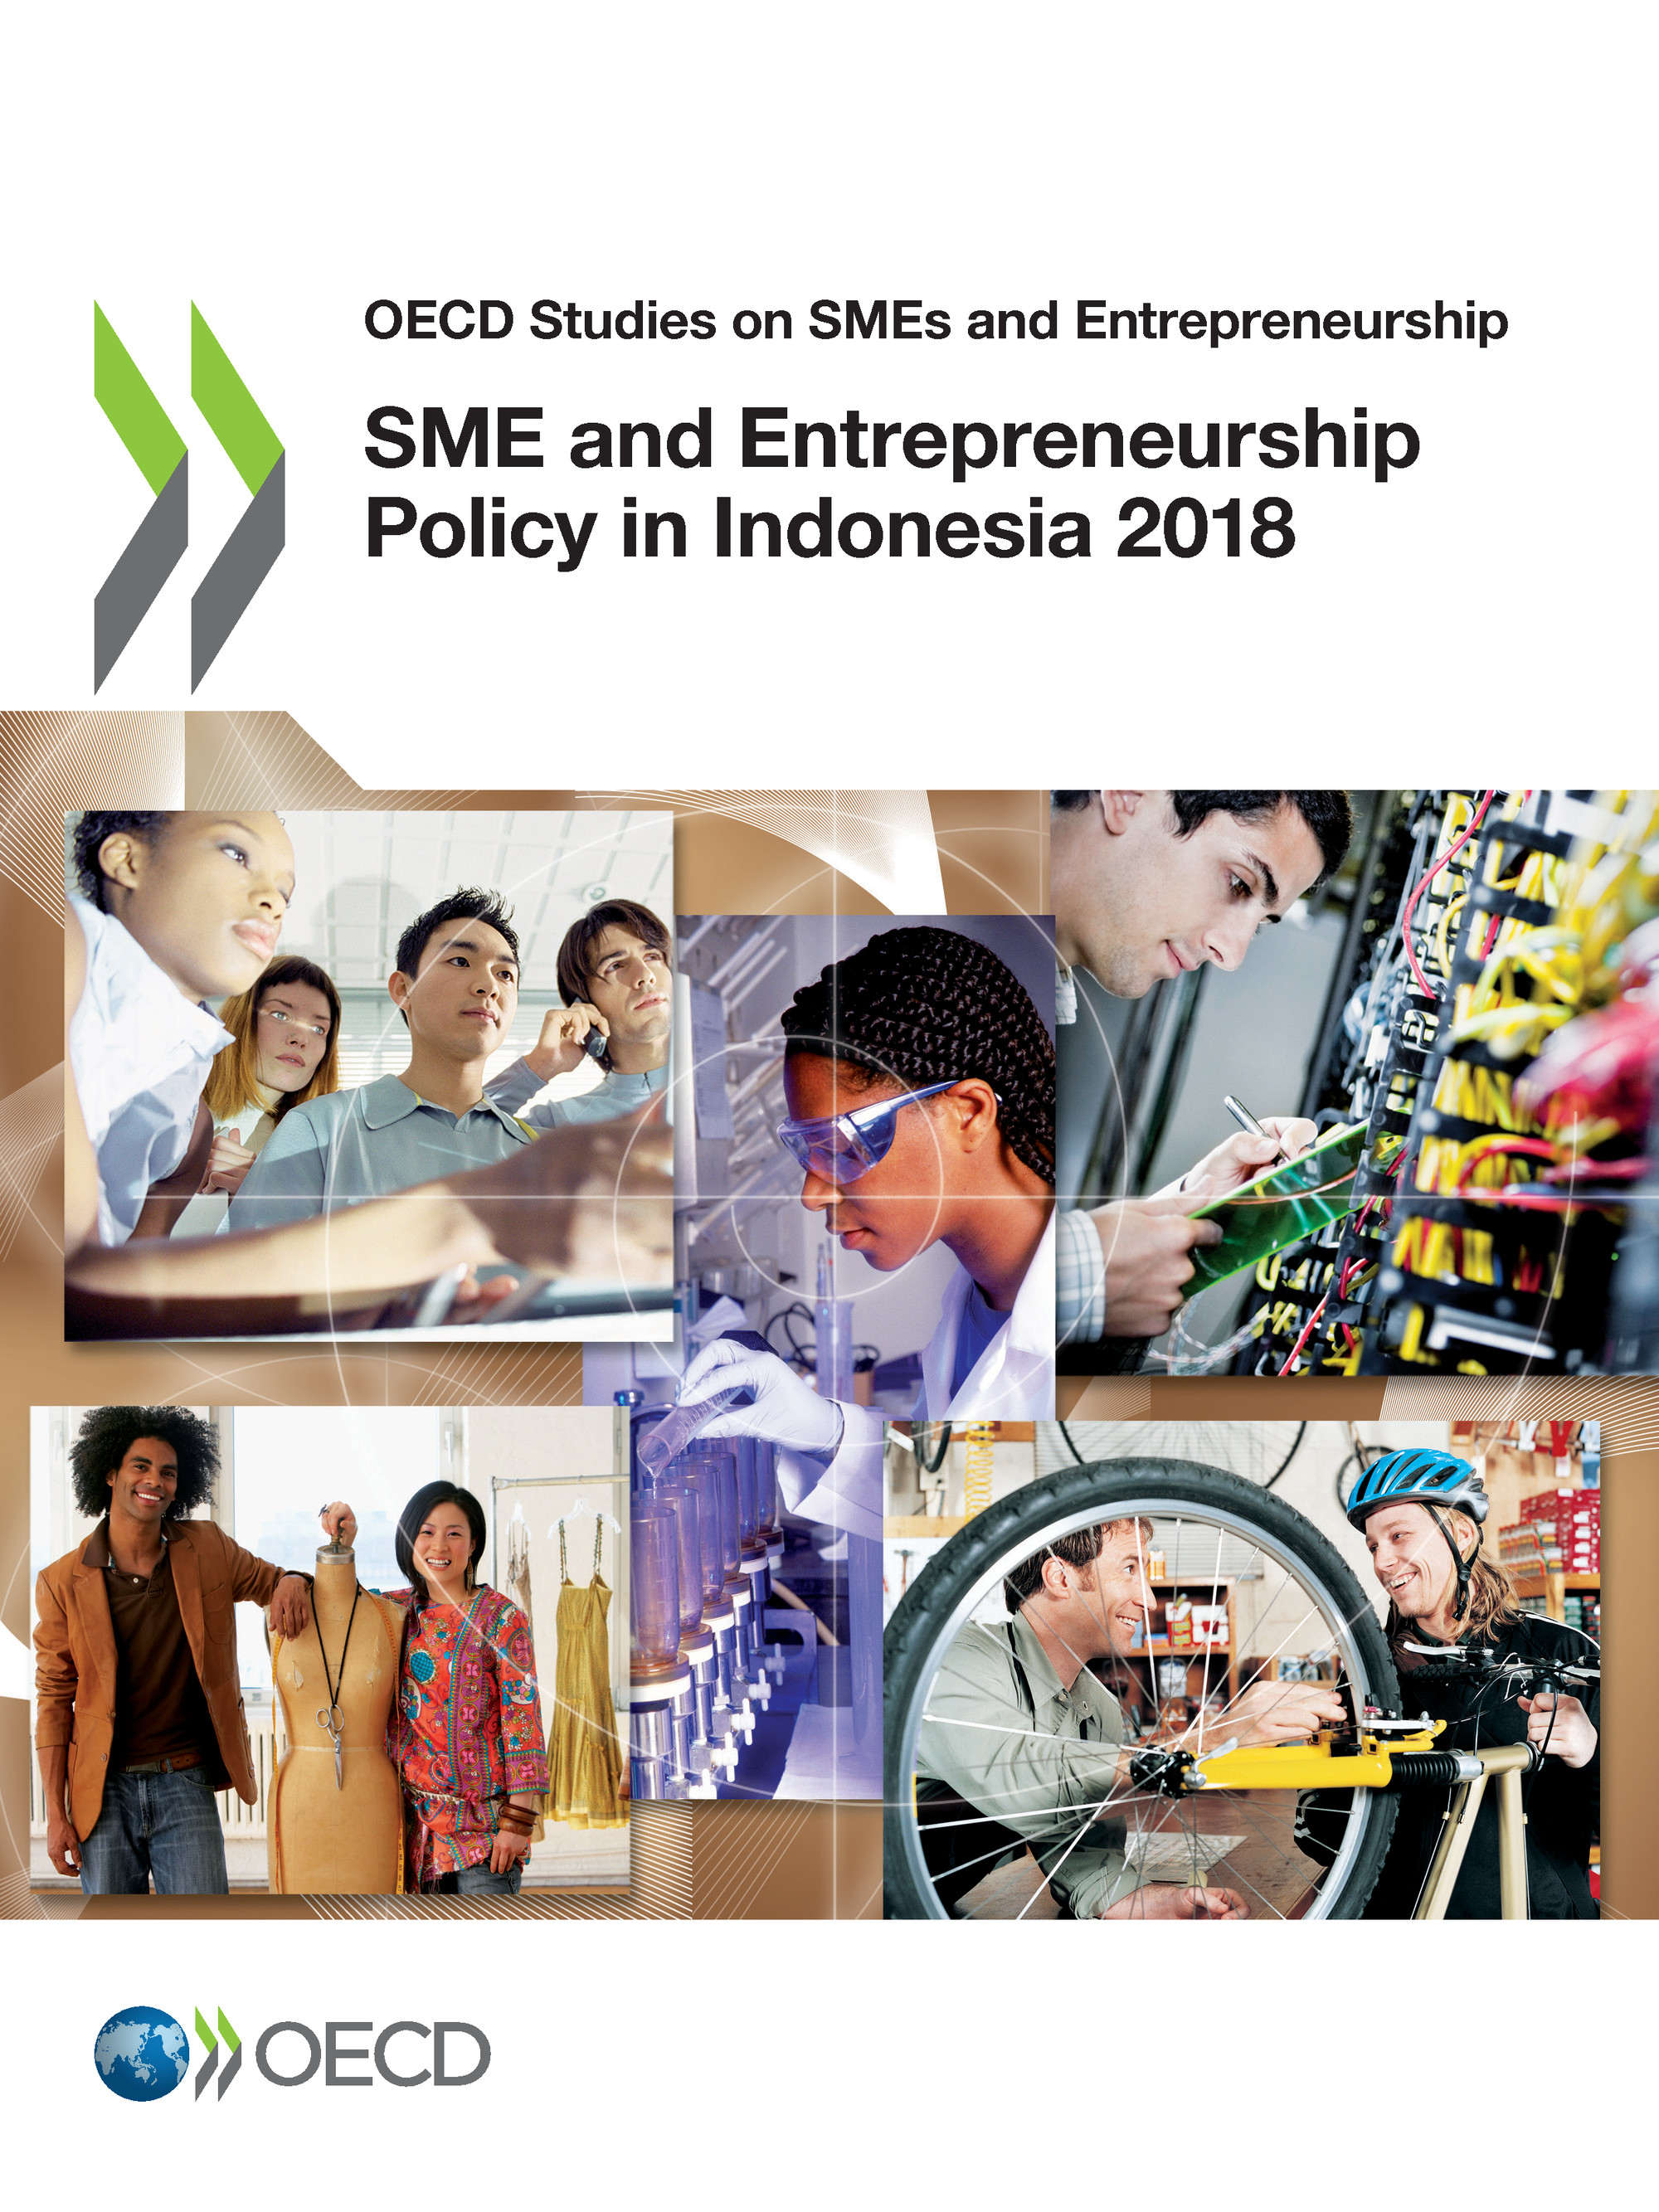 SME and Entrepreneurship Policy in Indonesia 2018 De  Collectif - OCDE / OECD